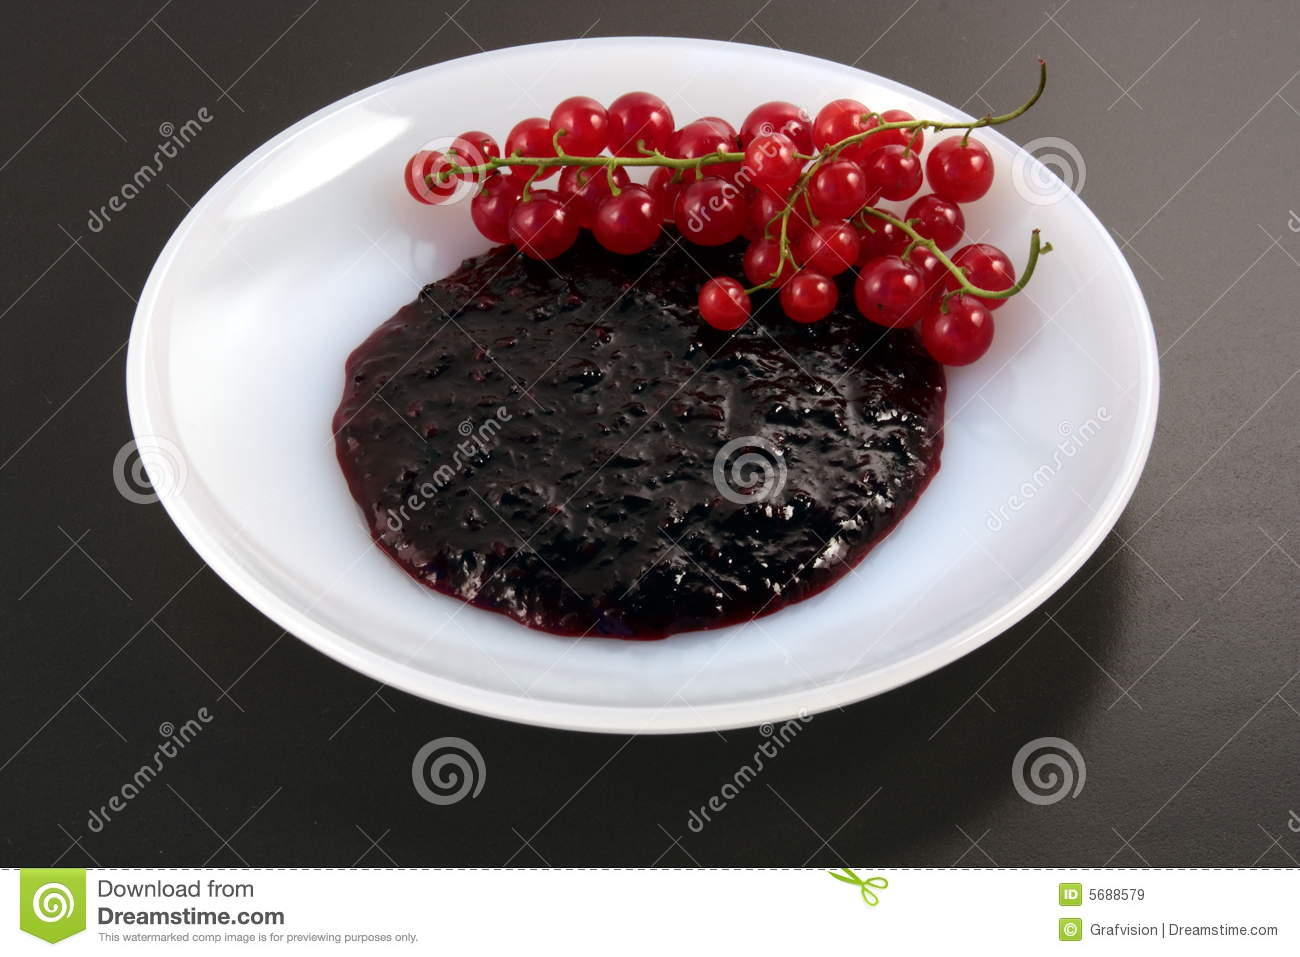 Red Currant Jam Royalty Free Stock Images - Image: 5688579